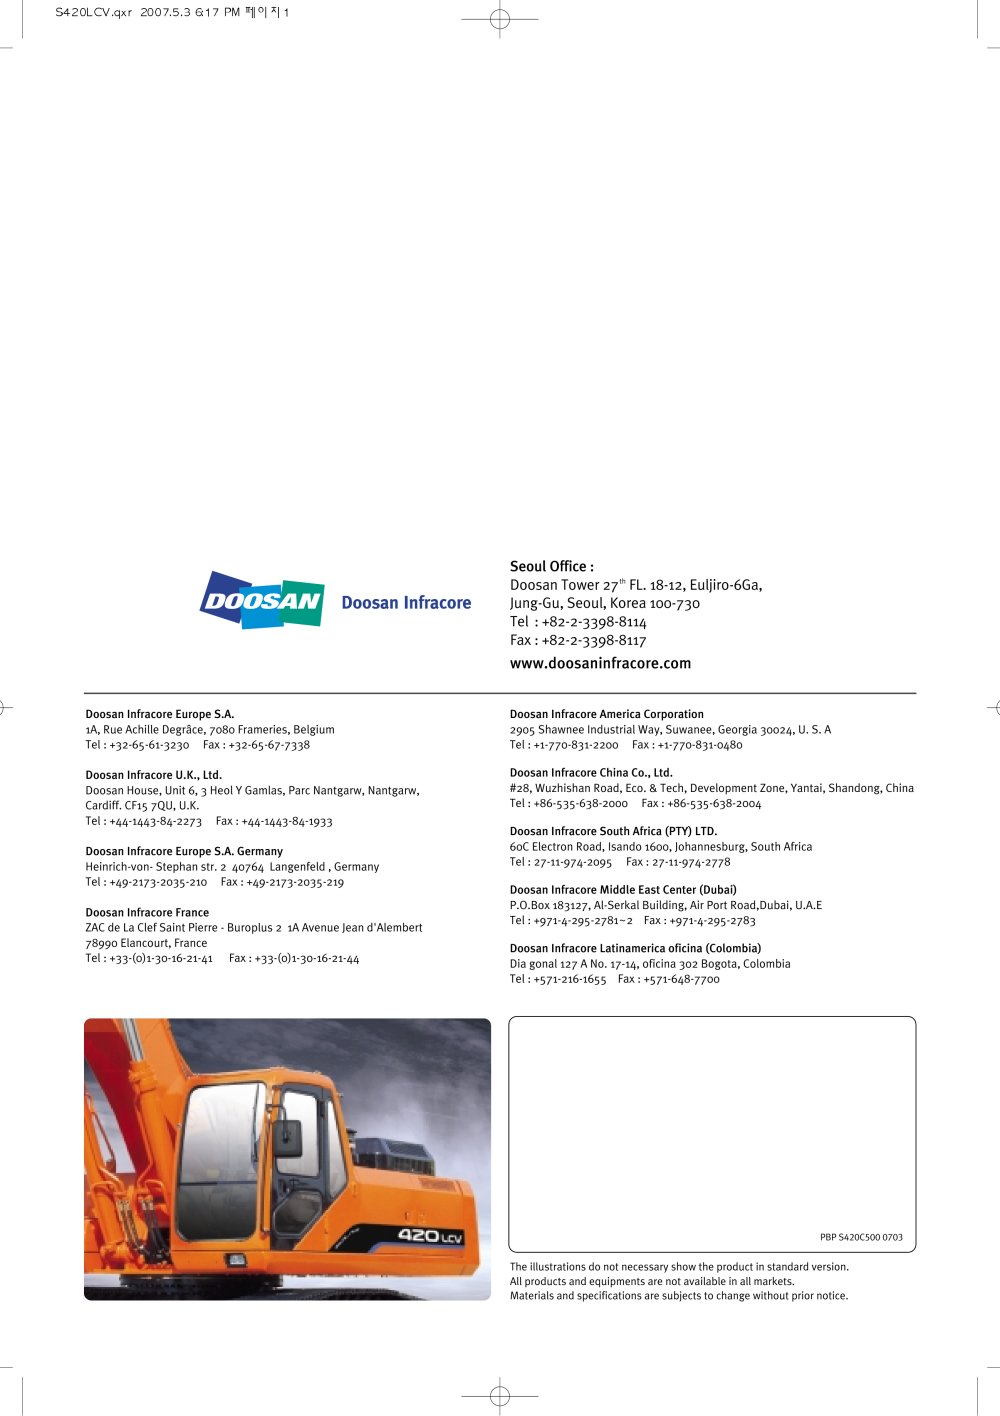 SOLAR420LCV - 1 / 16 Pages